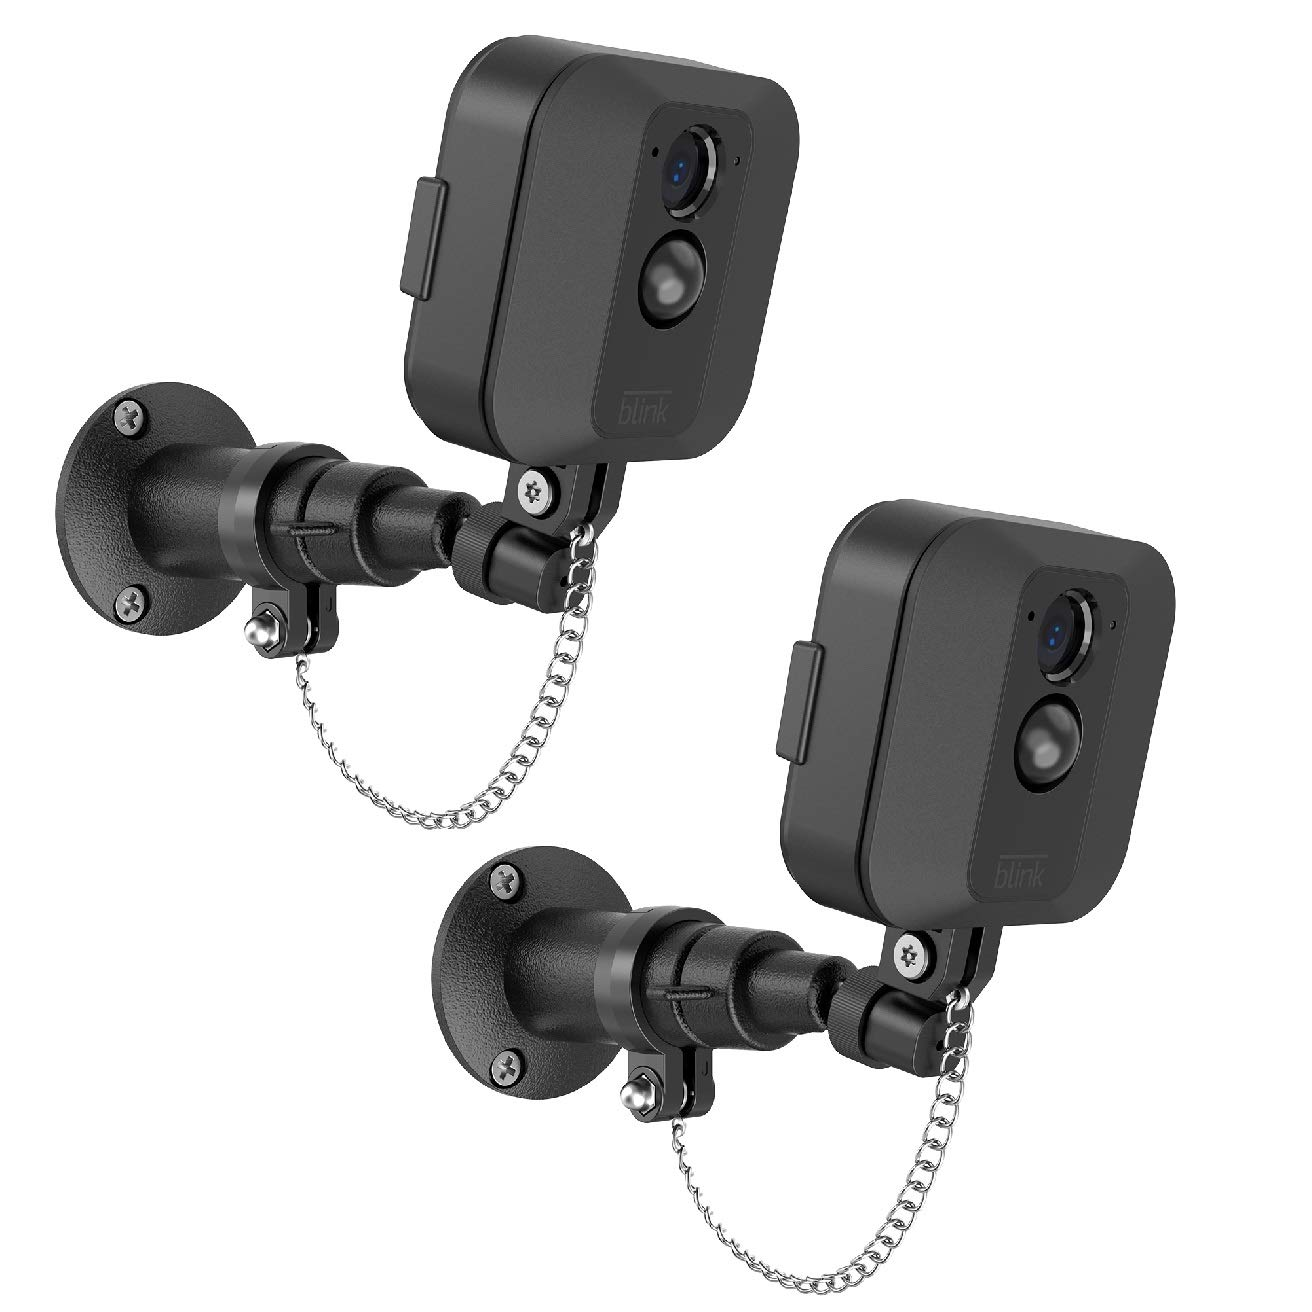 Blink XT Camera Wall Mount Bracket - Anti-Theft Security Chain and Mount  Compatible with Blink XT Outdoor Camera - Extra Security for Your Blink